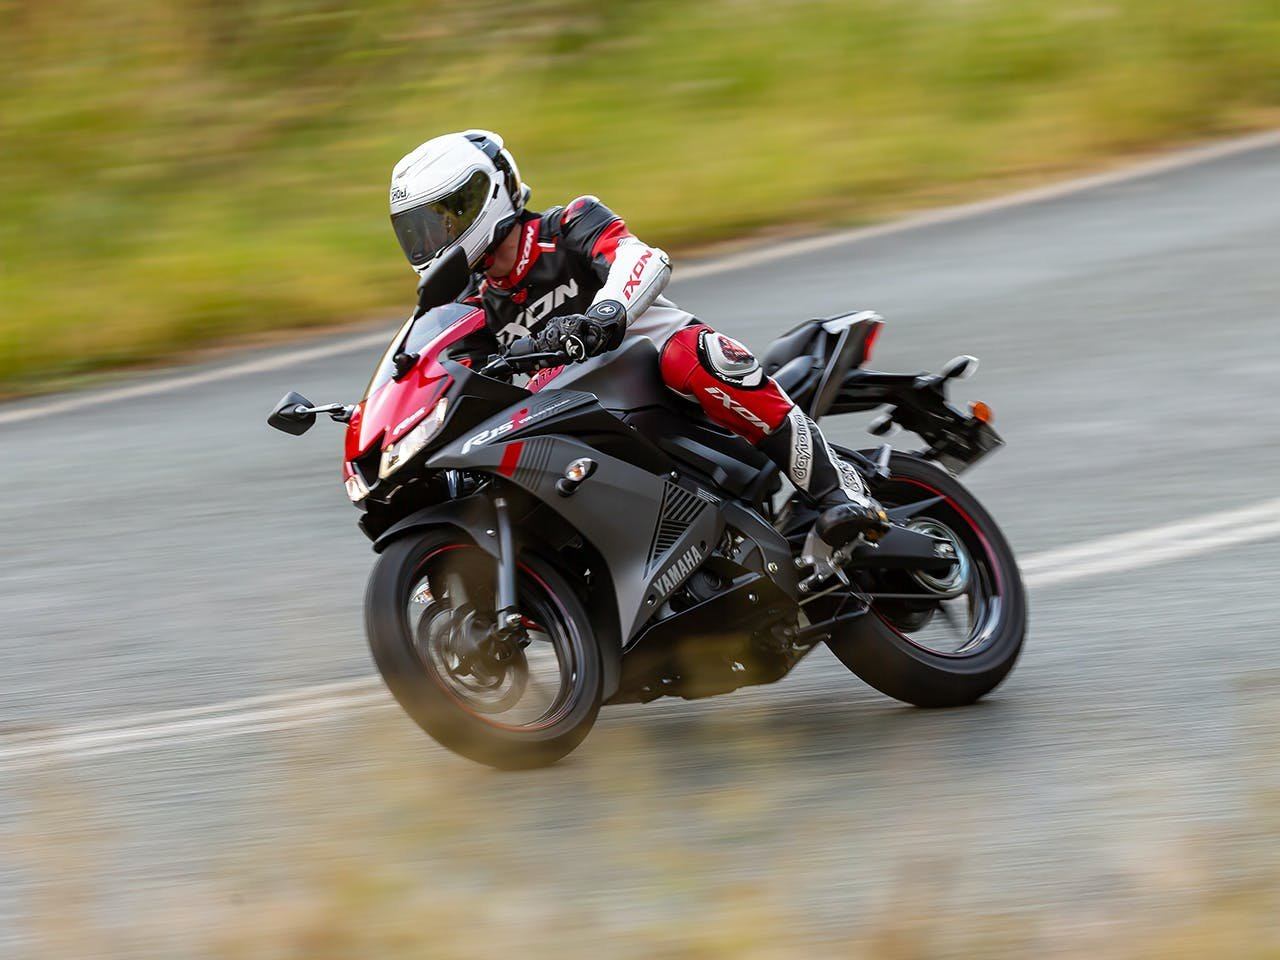 Yamaha YZF-R15 in Thunder Grey colour, on the road